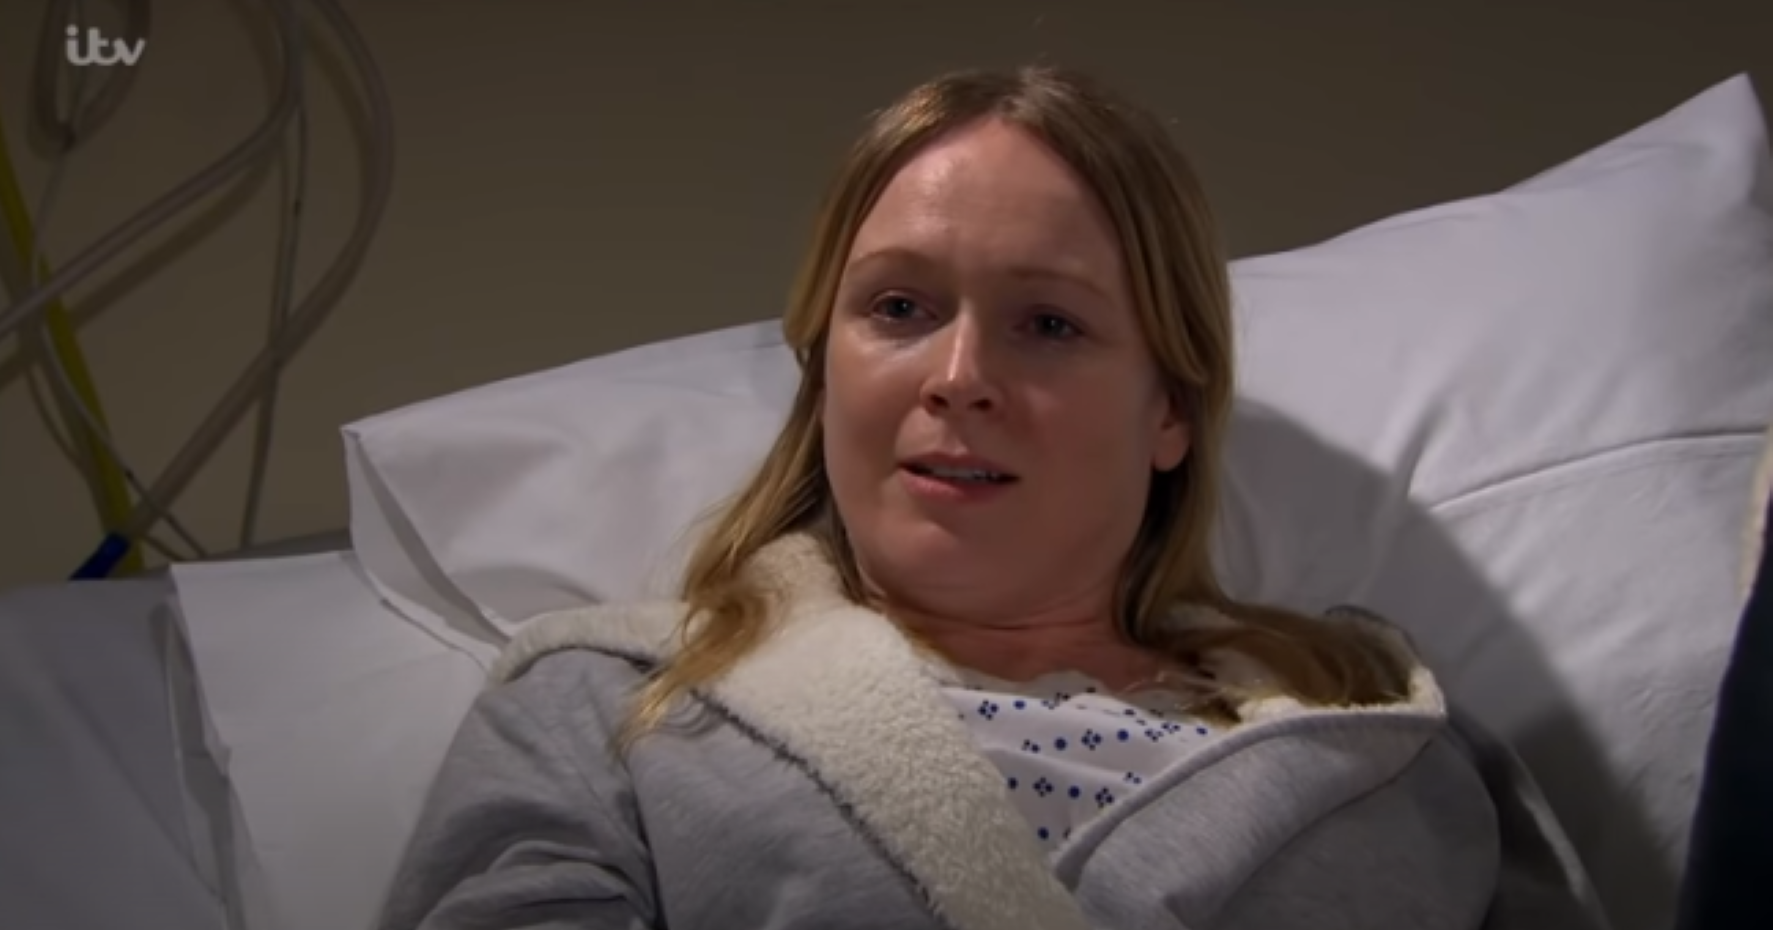 Emmerdale fans convinced Vanessa will die after actress Michelle Hardwick announces pregnancy